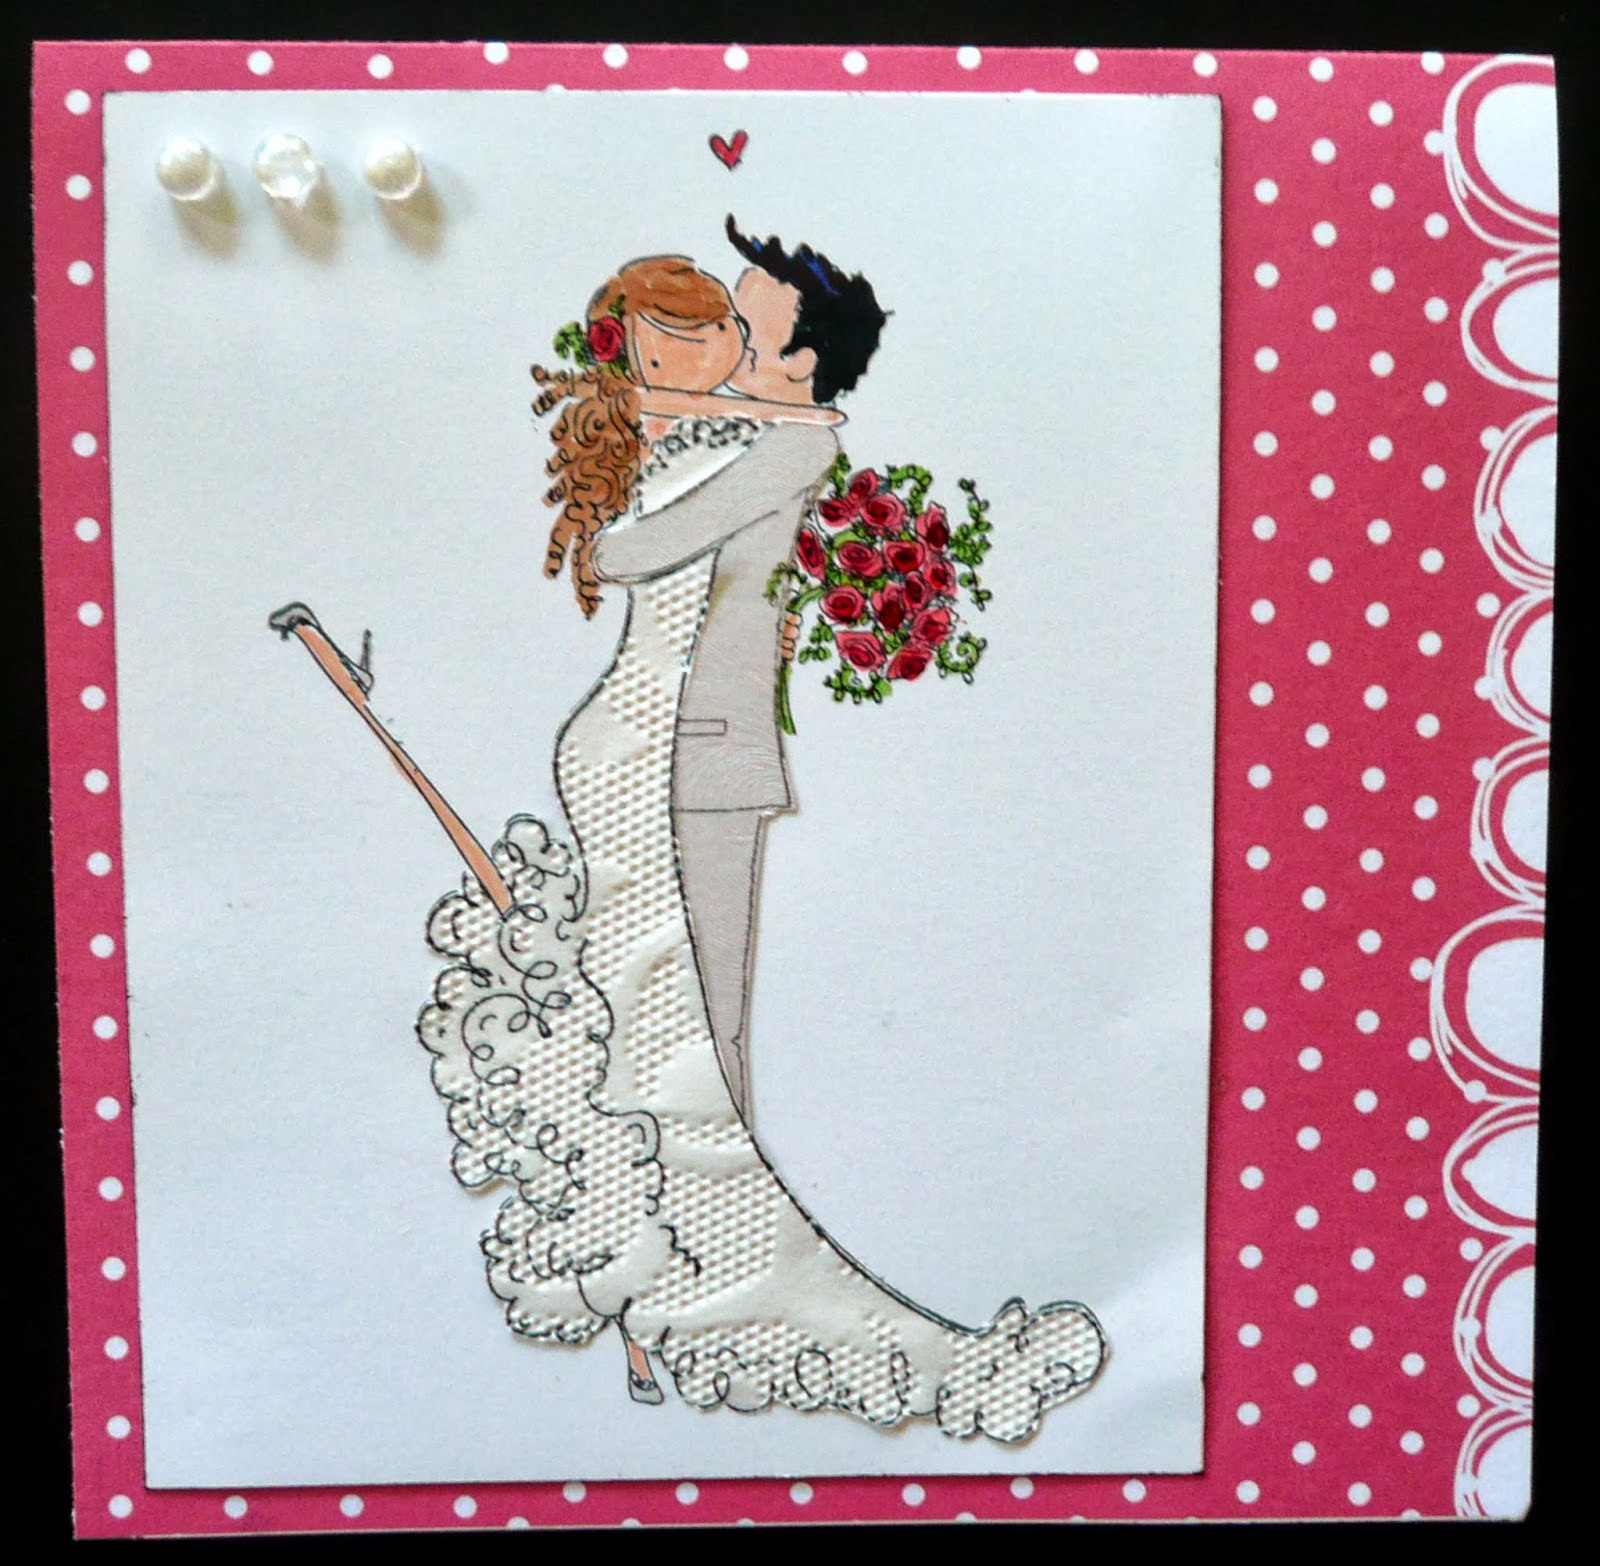 How to scrapbook wedding cards - I Have Had Such Fun Making This Wedding Card I Have Been Looking For Cute Bride And Groom Stamps And Found That Really Cute Stamps Were Hard To Find